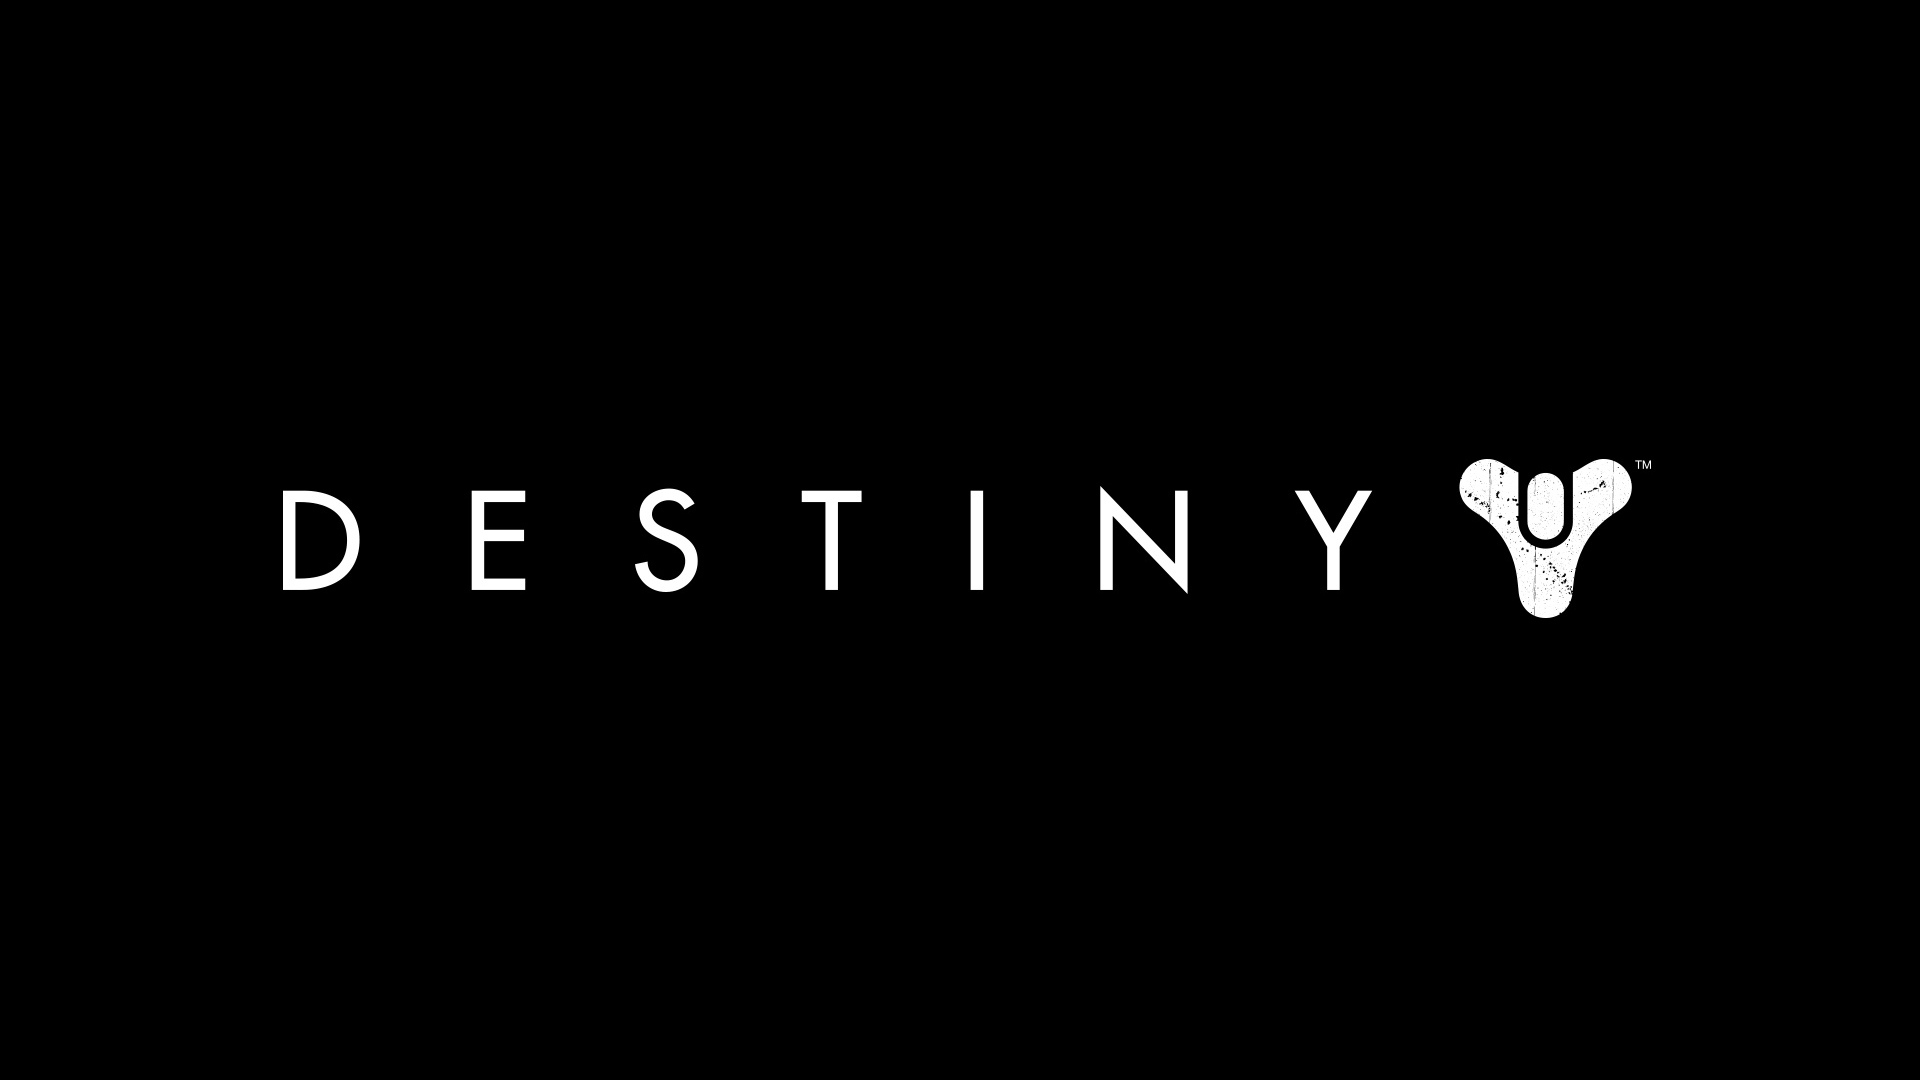 Logo Of Destiny Game Black Background HD 1920x1080 1080p